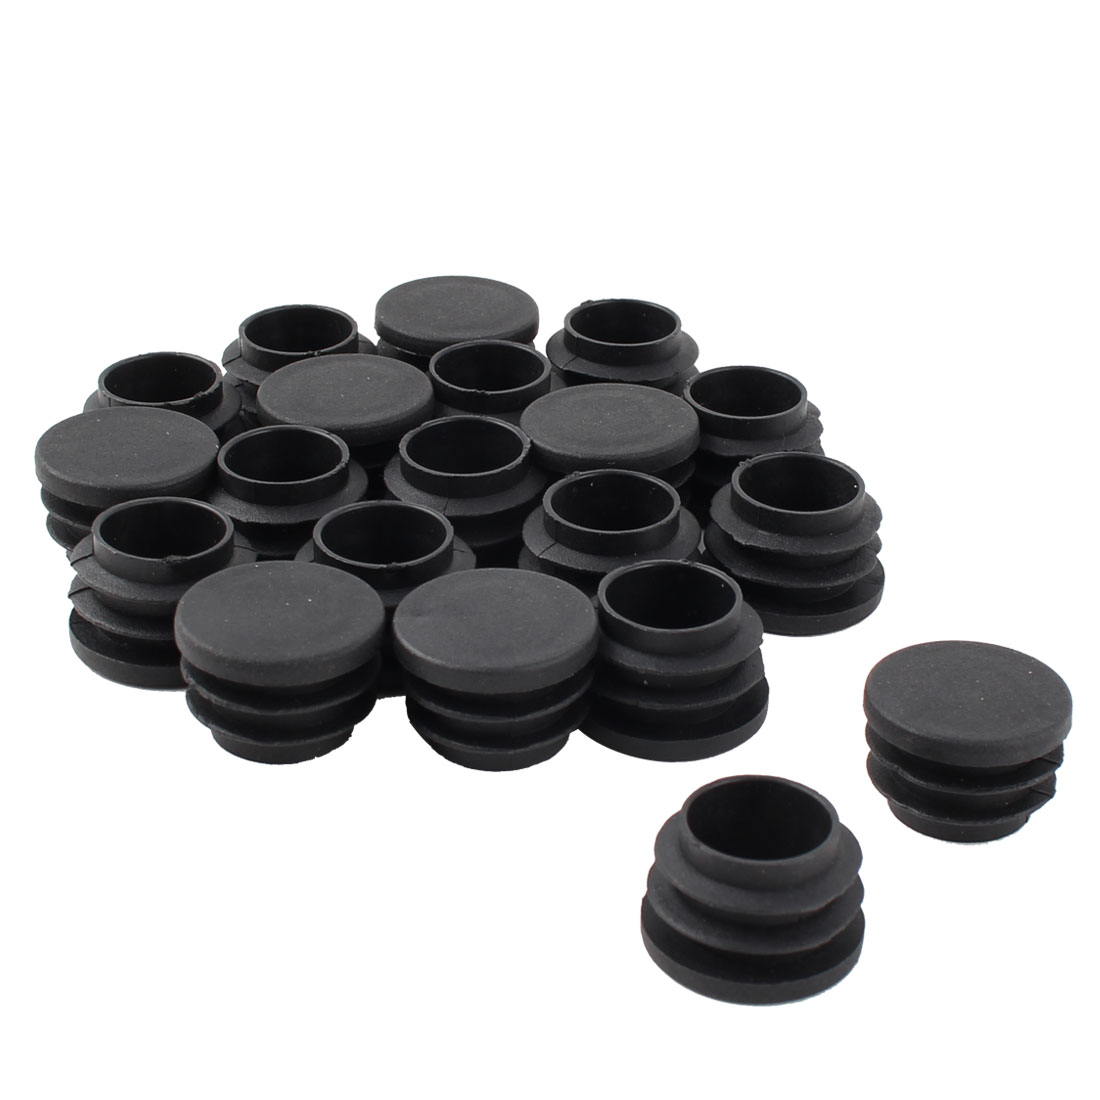 Furniture Table Chair Legs Plastic Flat Base Round Tube Pipe Insert Cap Cover Black 25mm Dia 20pcs